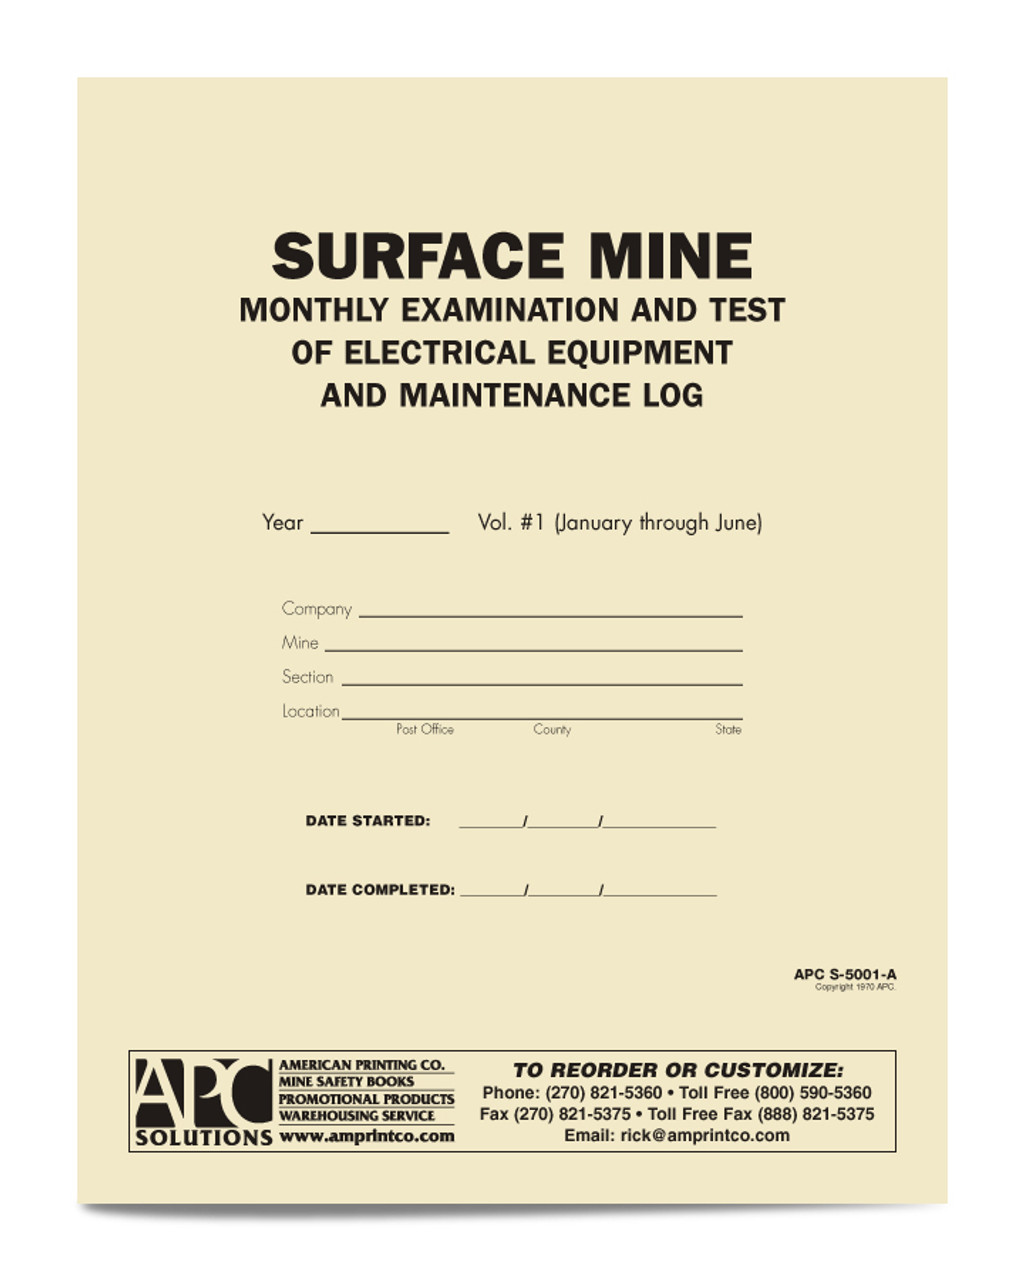 APC S-5001-A: Surface Mine Monthly Examination & Test of Electrical Equipment and Maintenance Log (January through June)